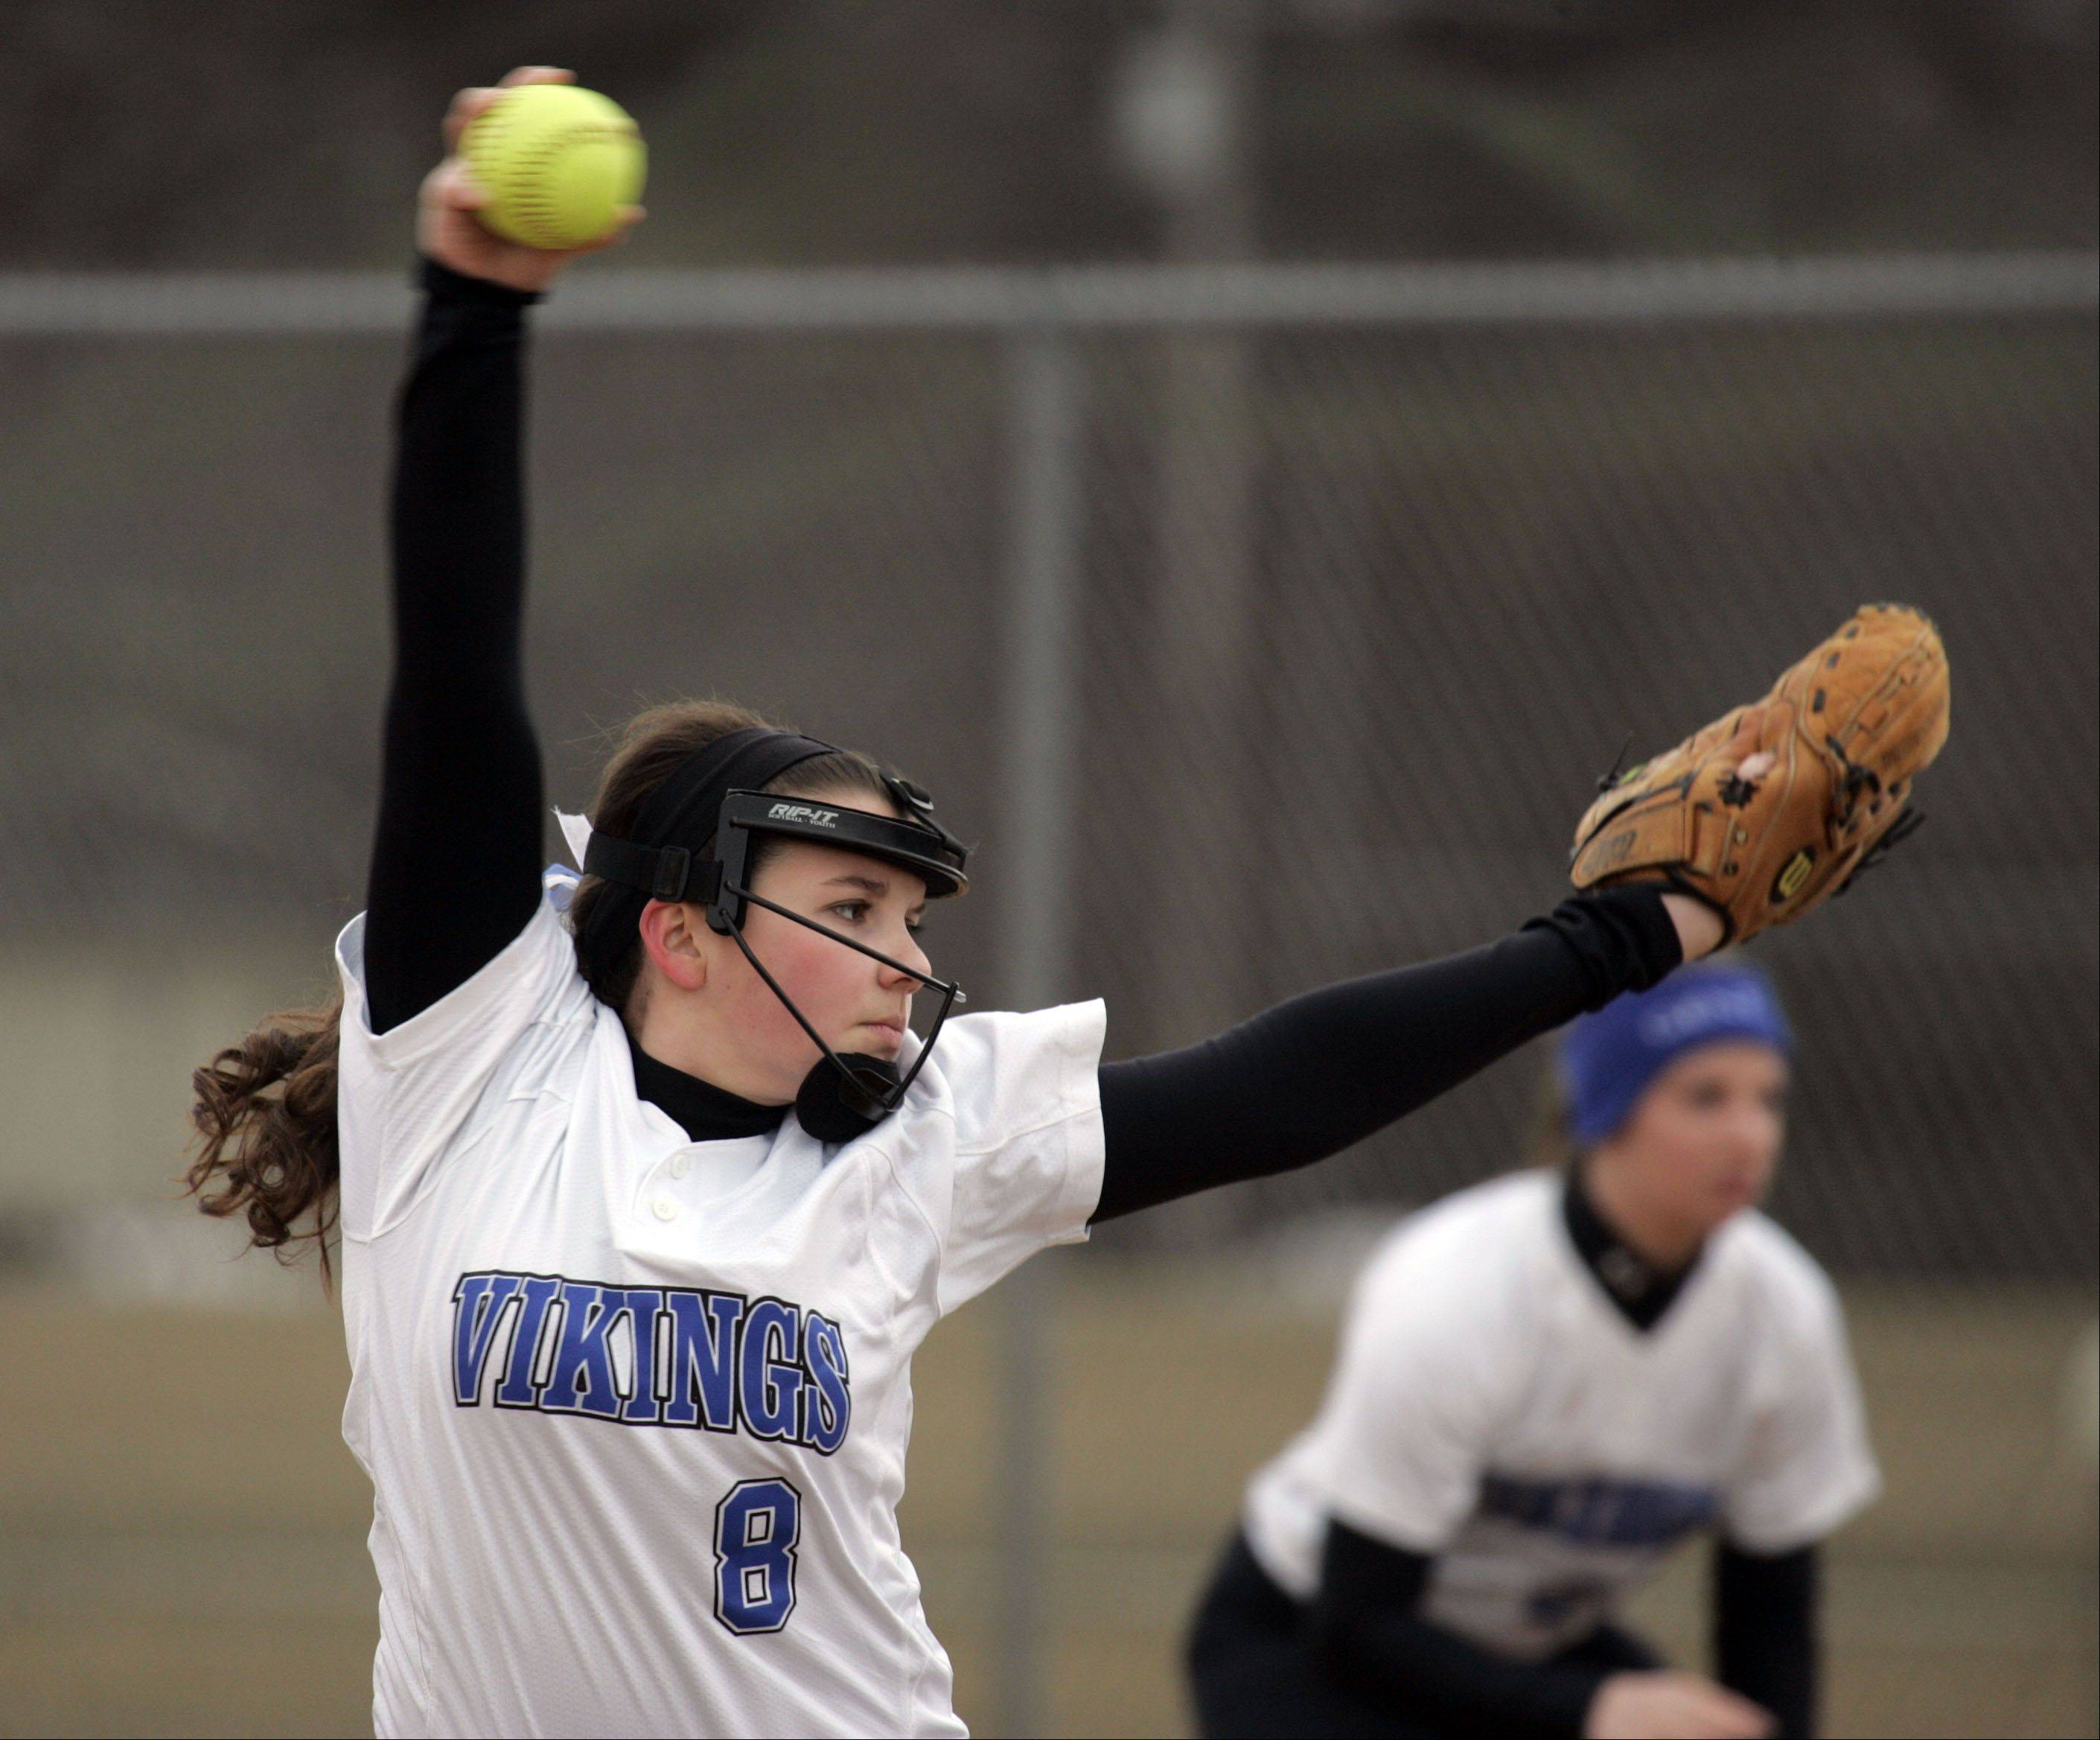 Geneva's Haley Orwig, 8, delivers her pitch at home against Oswego Wednesday.